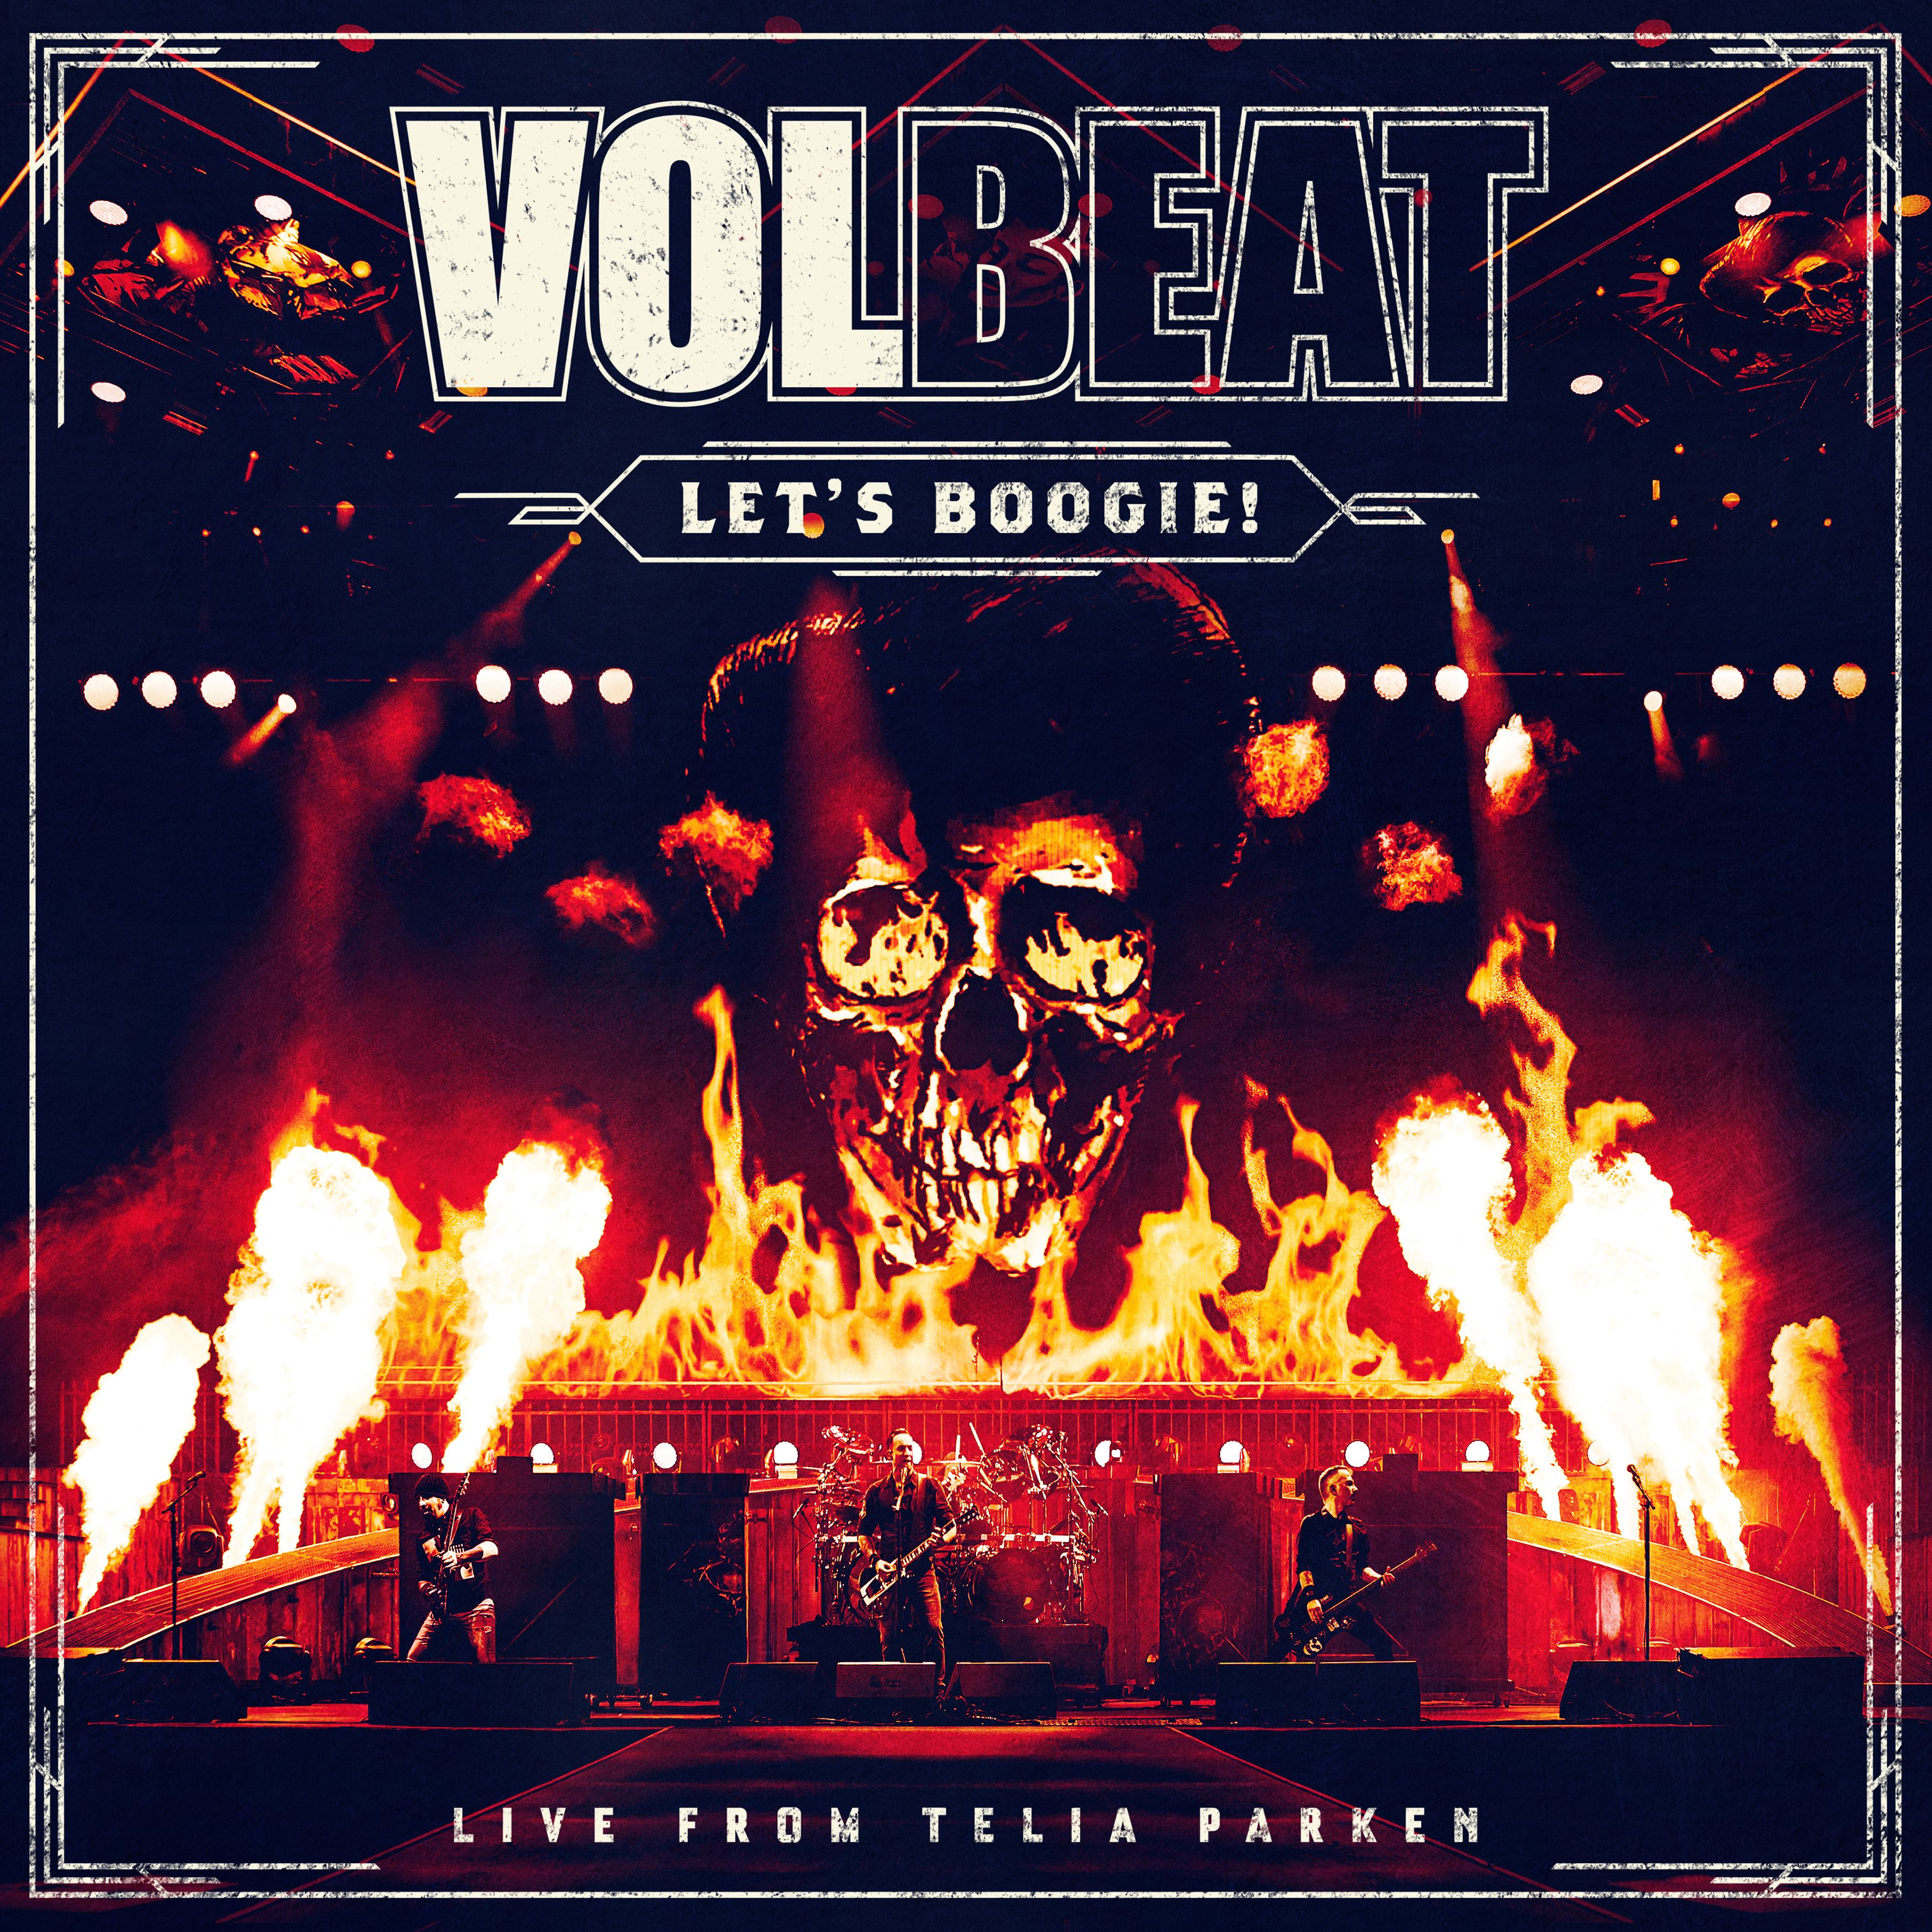 volbeat-lets-boogie-live-from-telia-parken-dvd-blueray-album-review